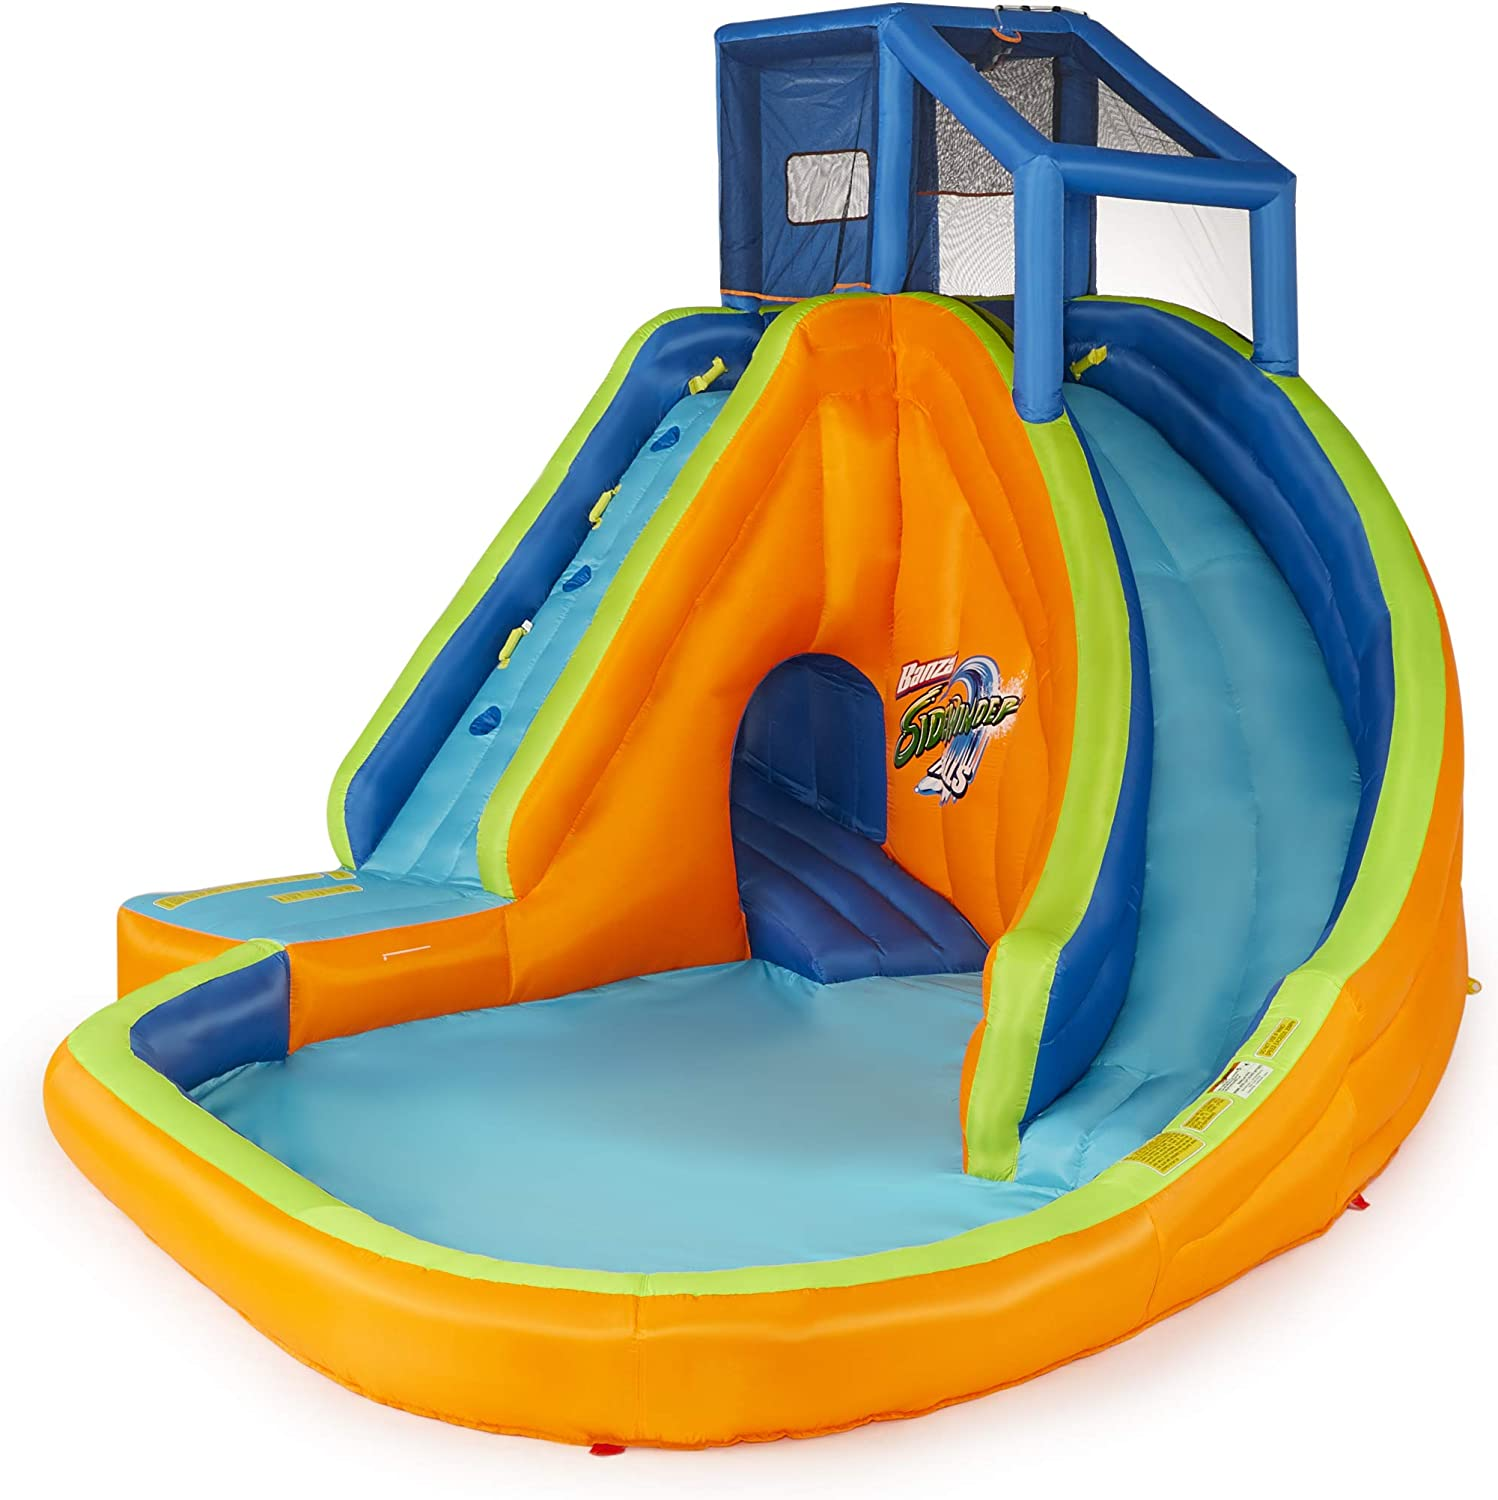 Top 11 Best Water Slide Pools Inflatable (2020 Reviews) 9